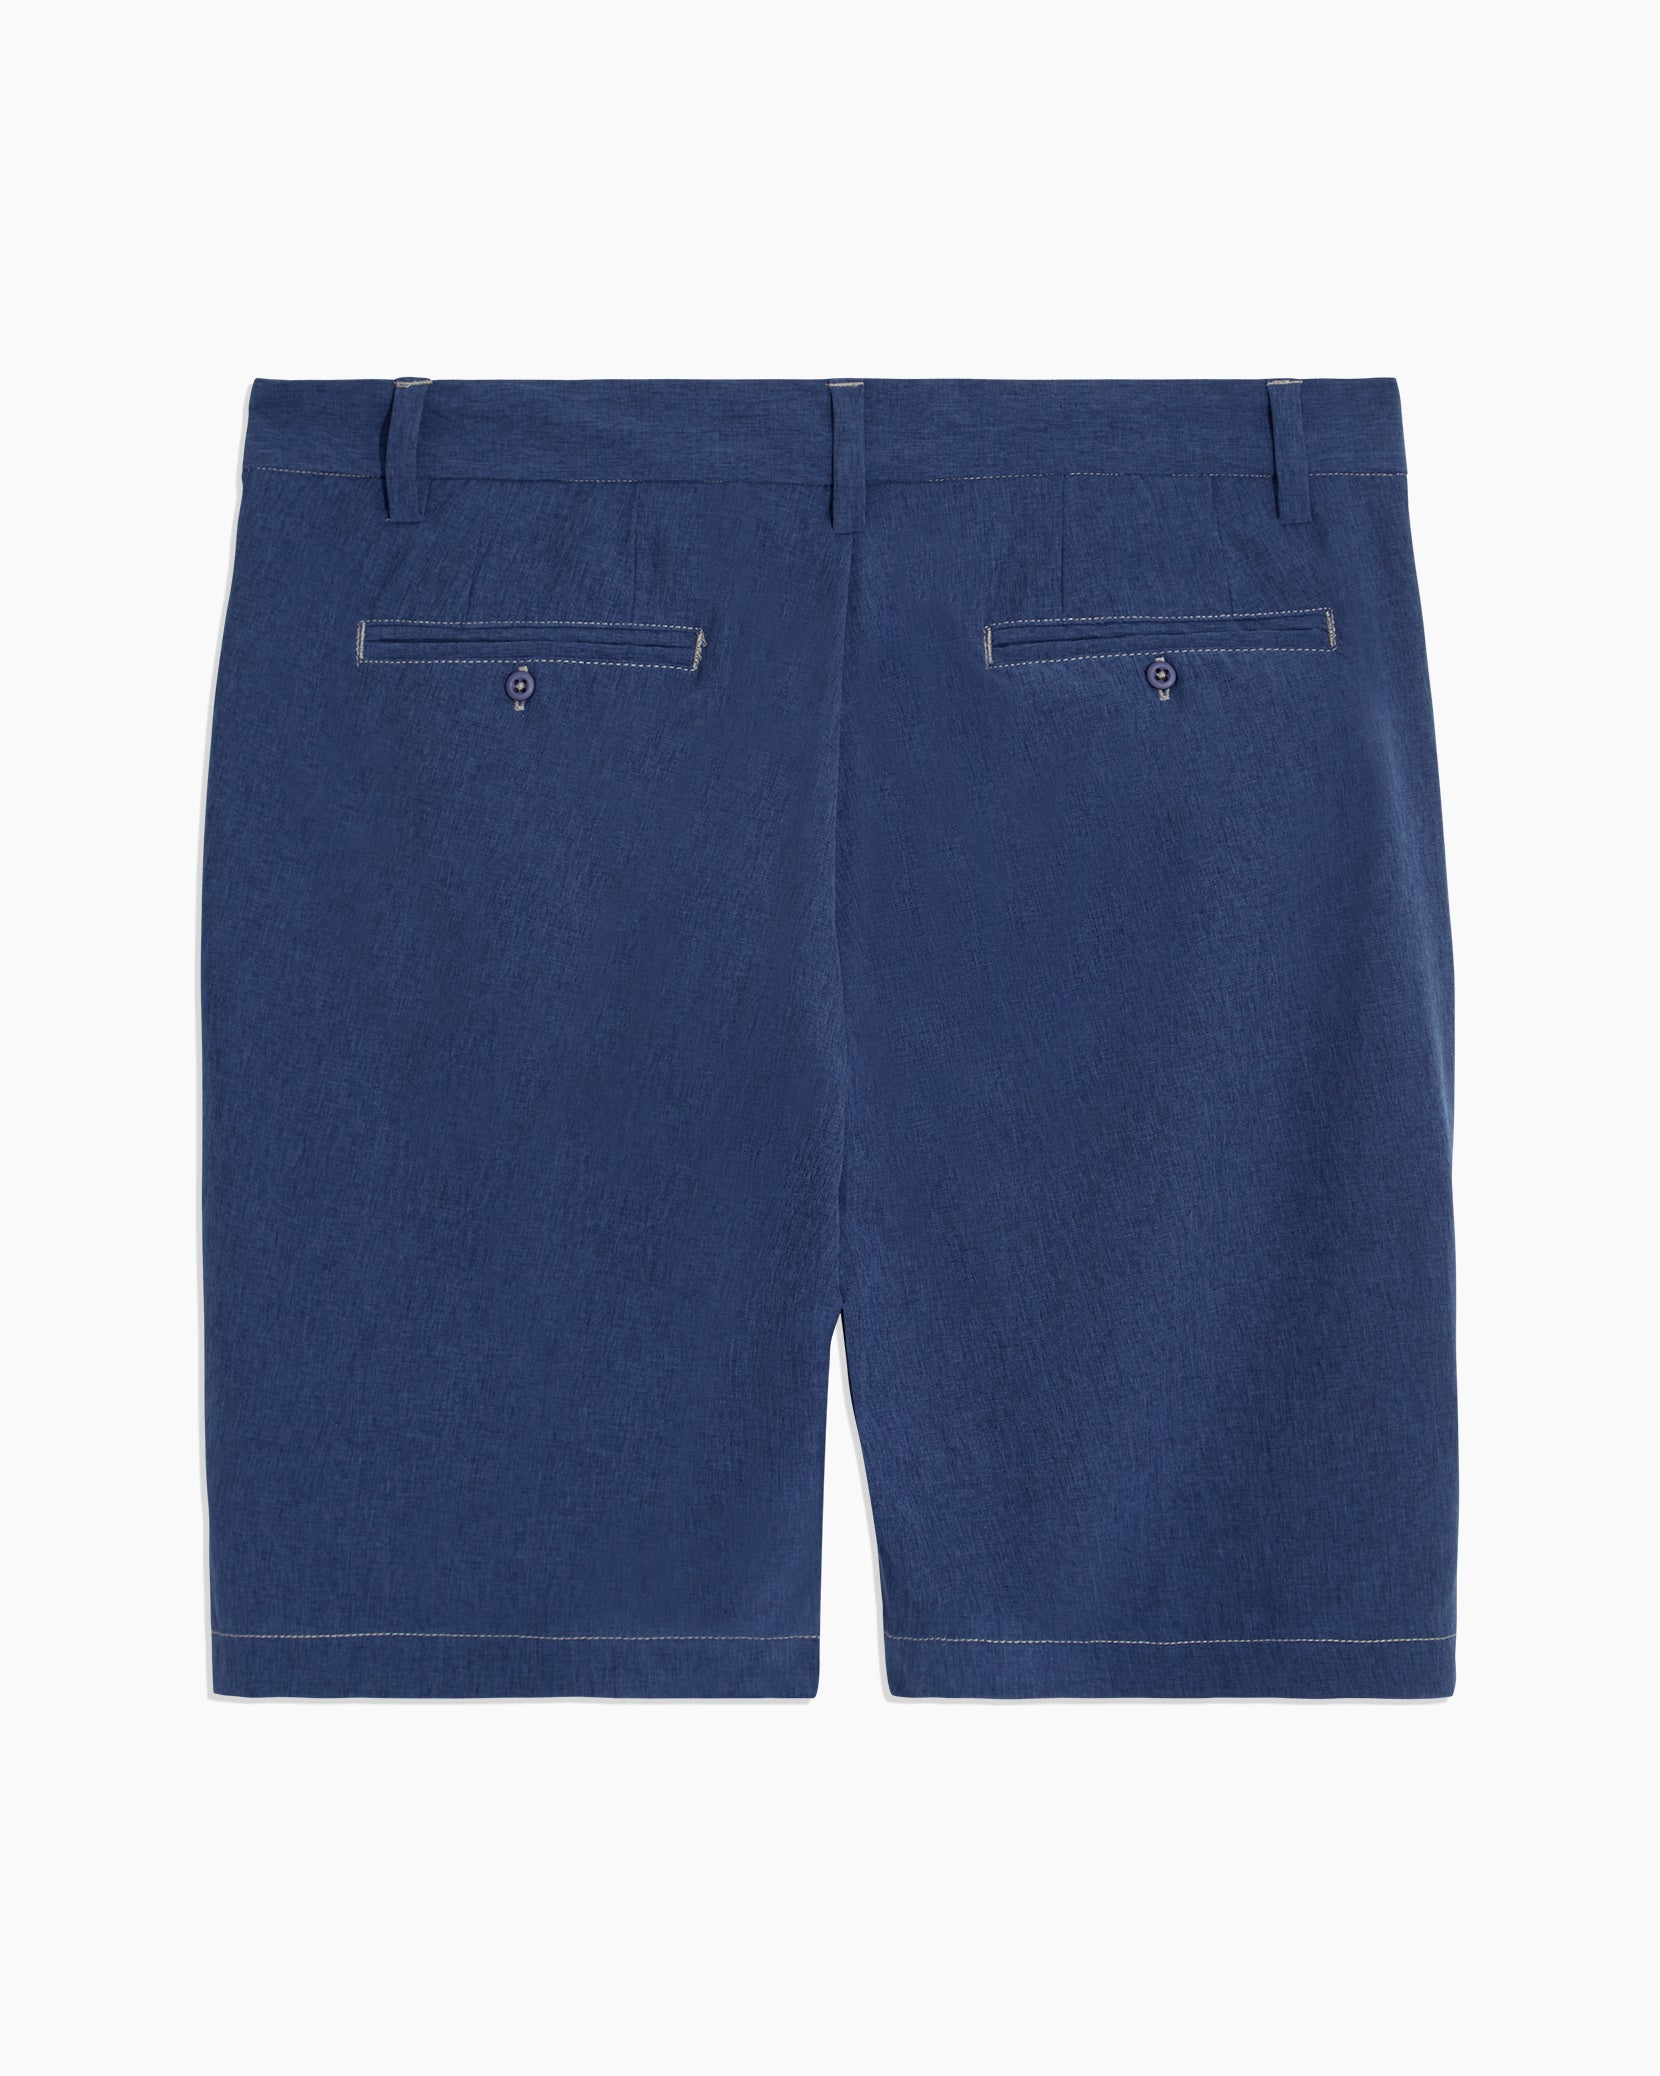 Versatility Stretch Chambray Short in Denim - 16 - Onia